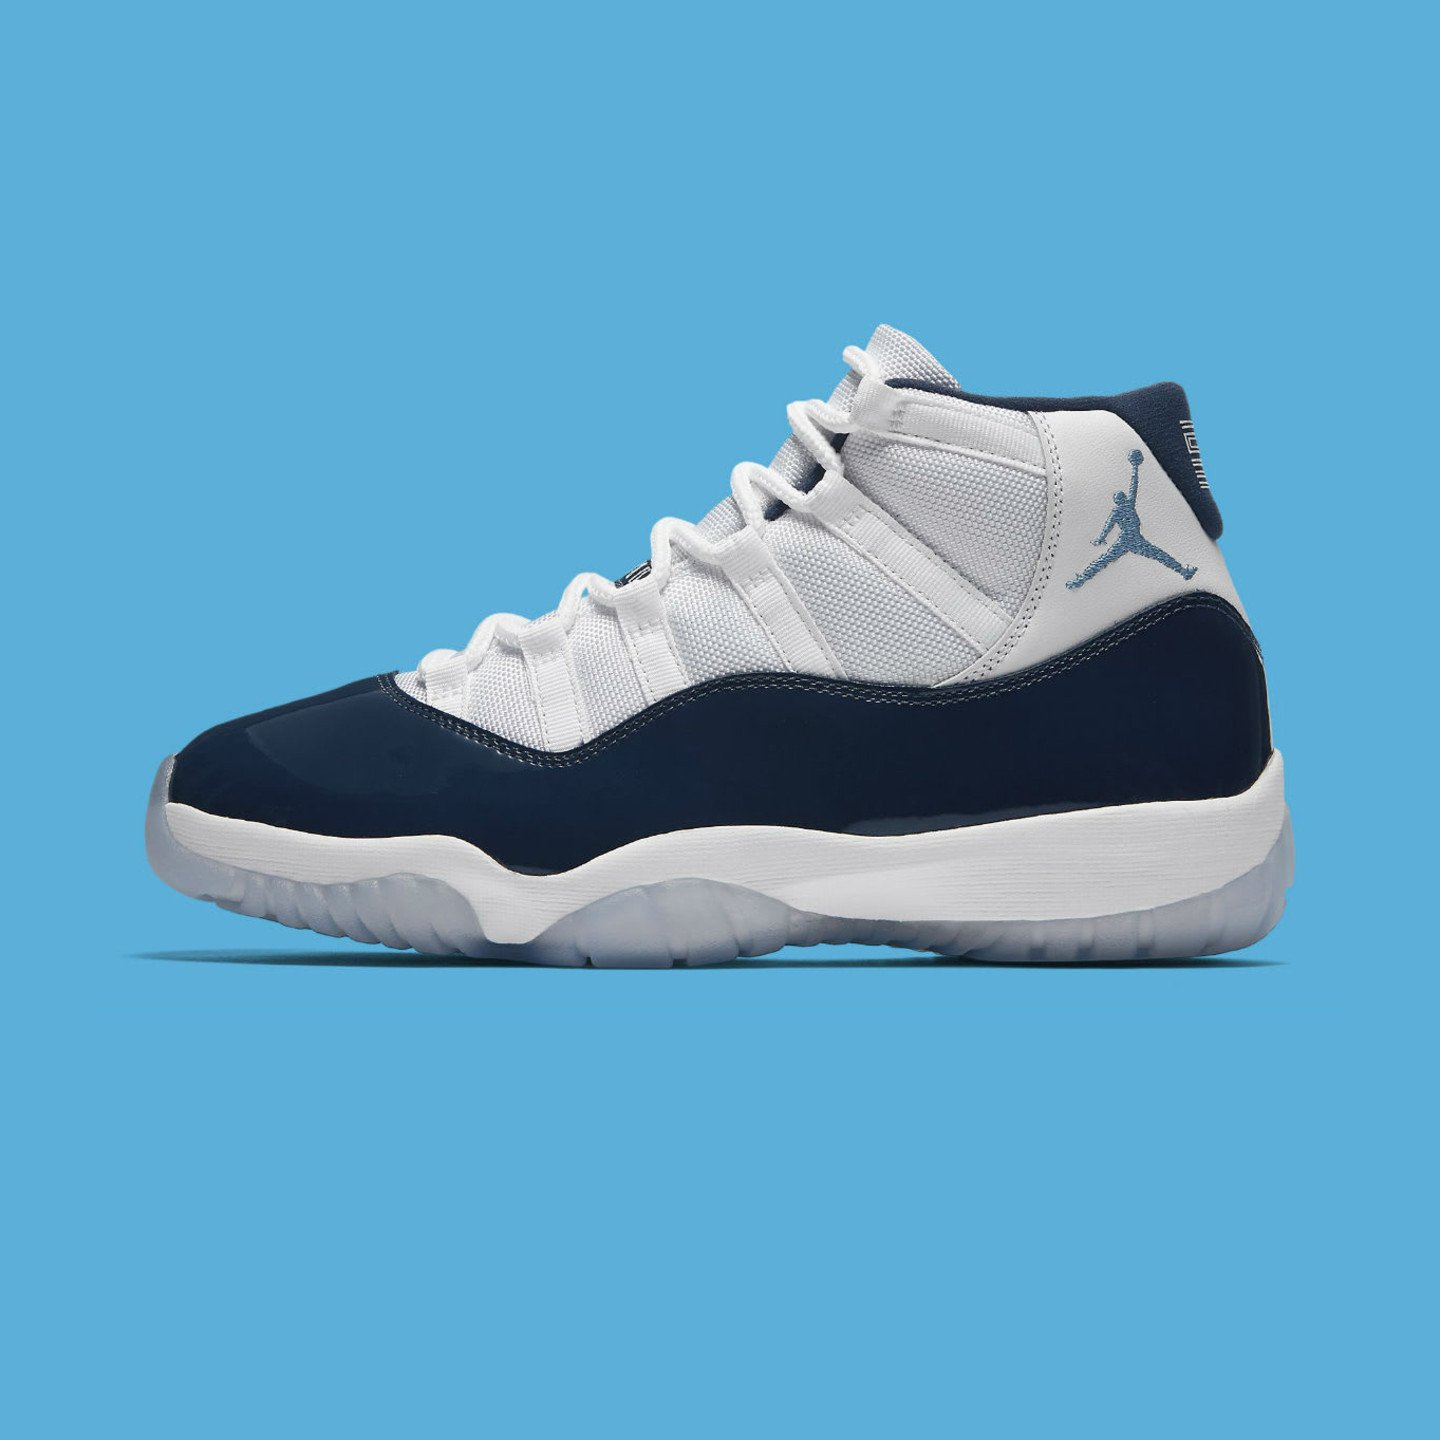 Jordan Air Jordan 11 Retro 'Win Like ´82' White / Midnight Navy / University Blue 378037-123